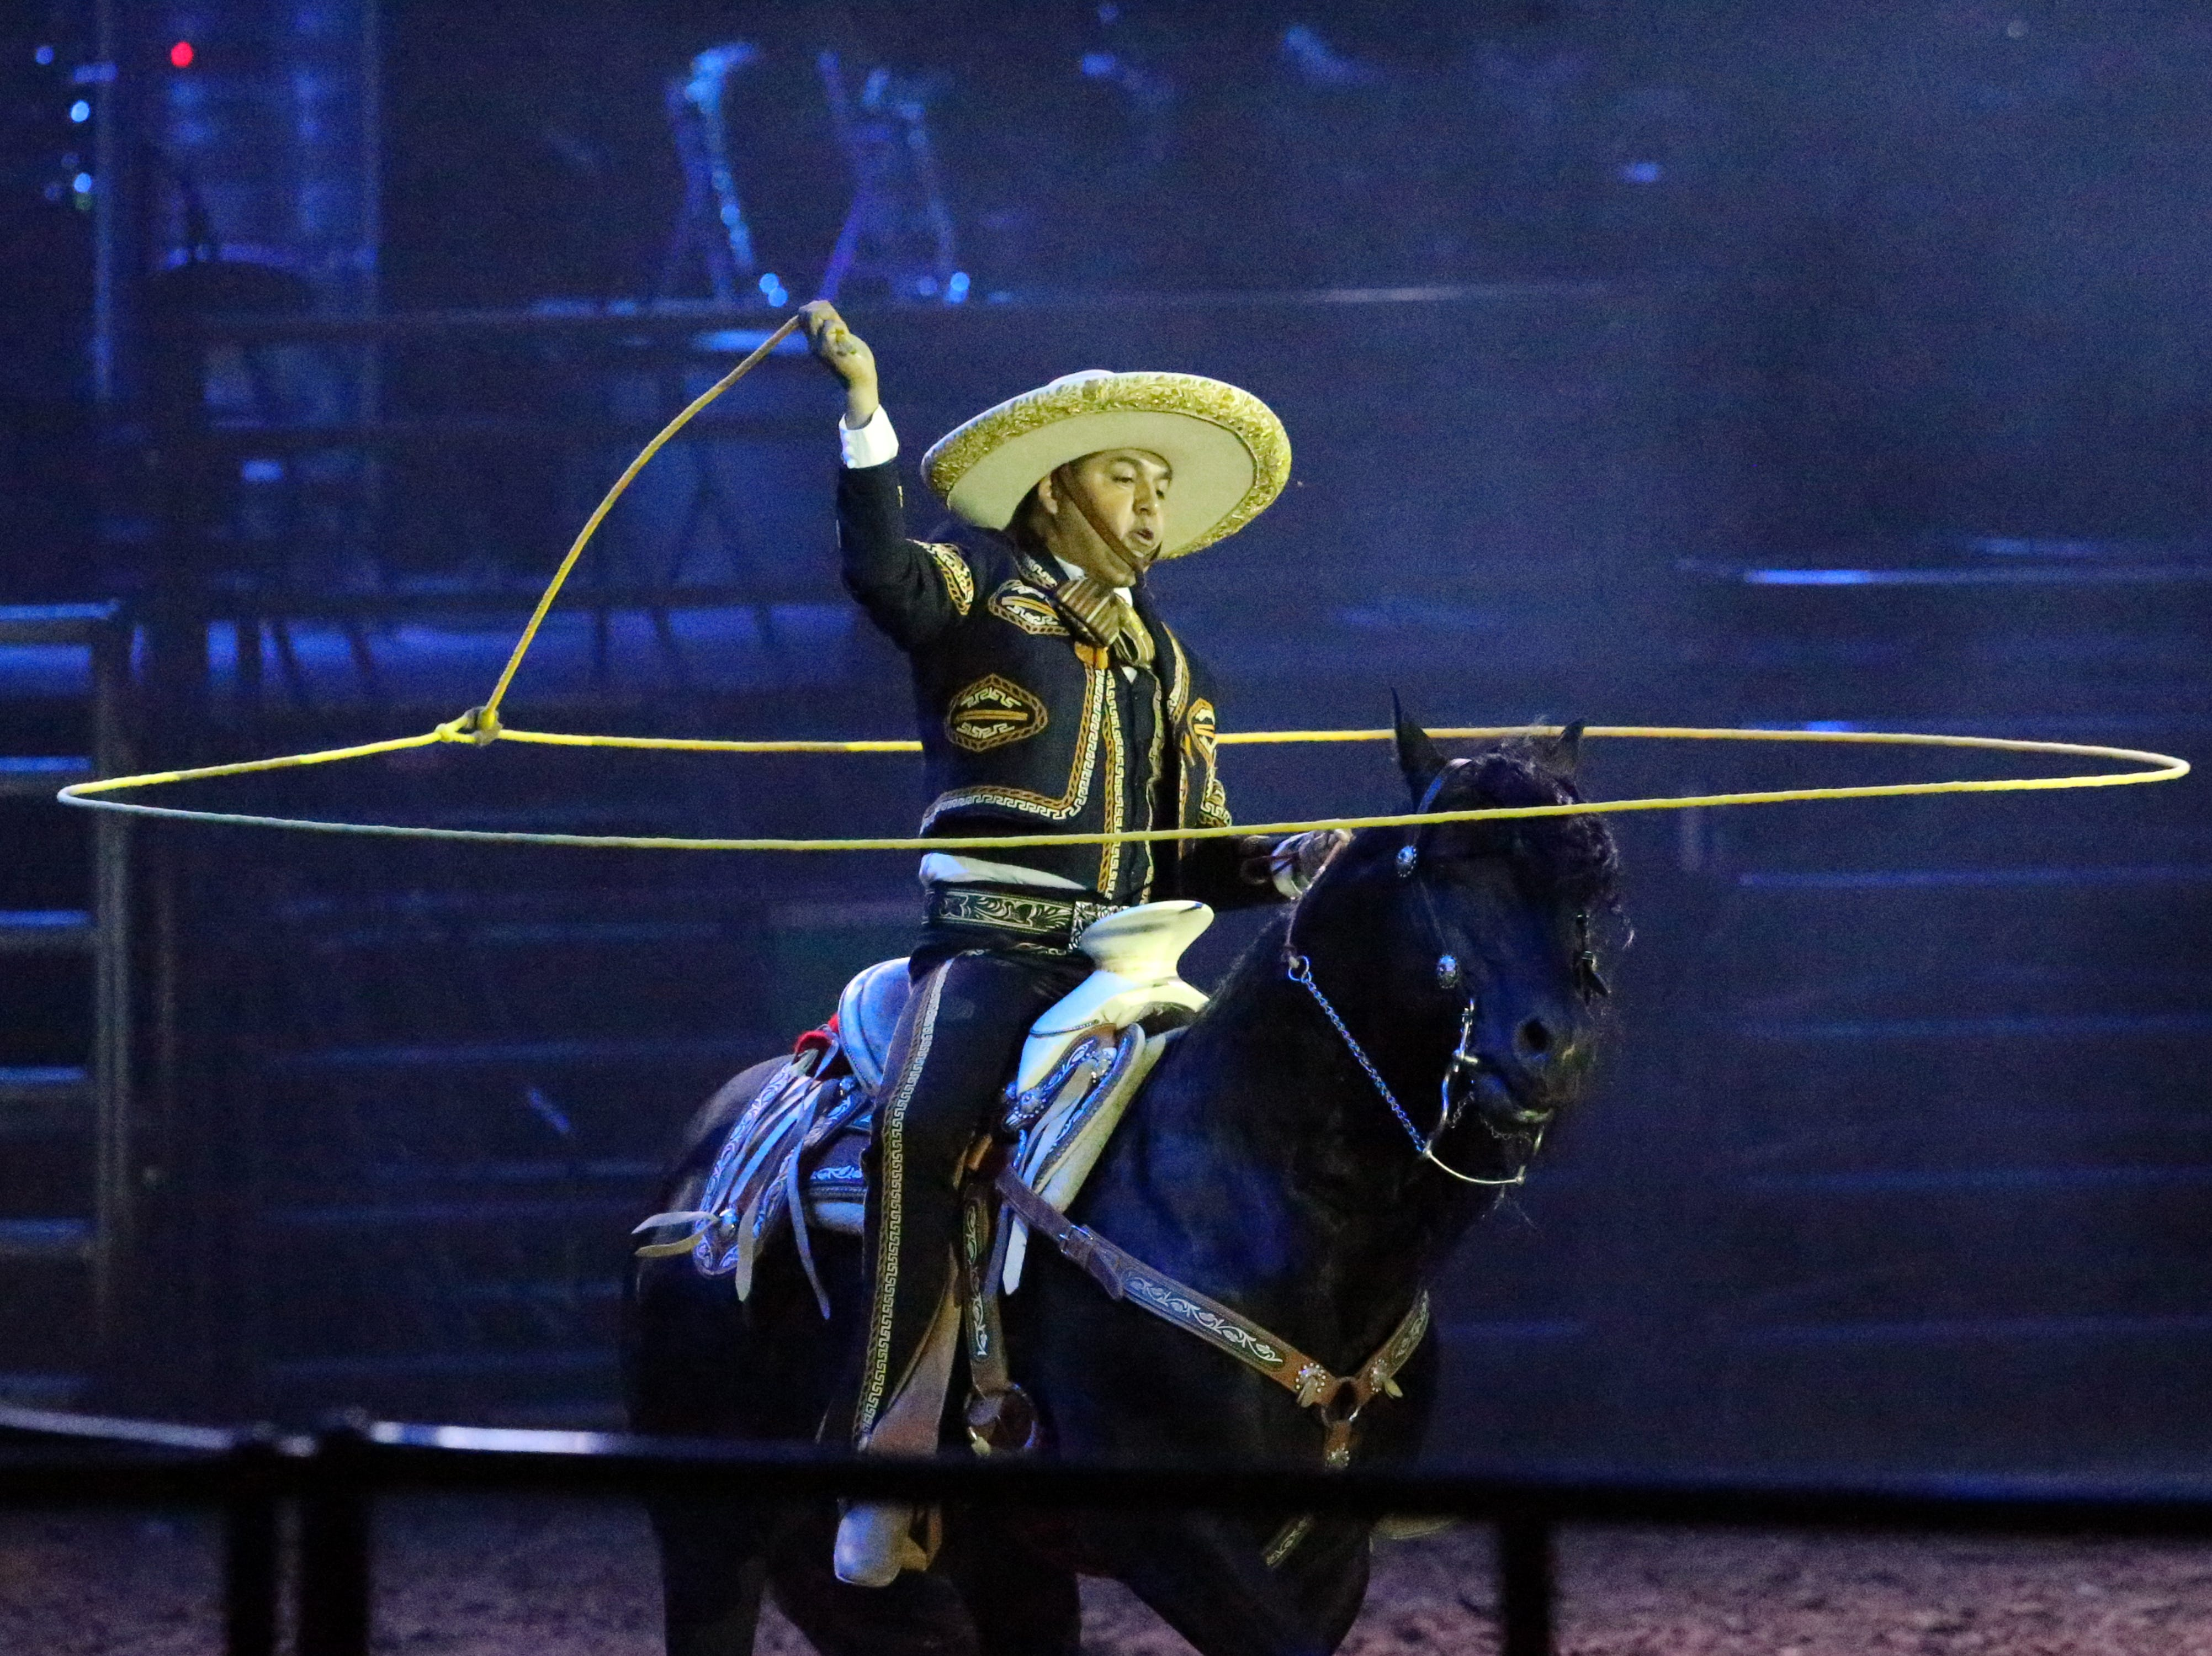 A Mexican Charro from Juarez showed his roping abilities Saturday night in the El Paso County Coliseum.